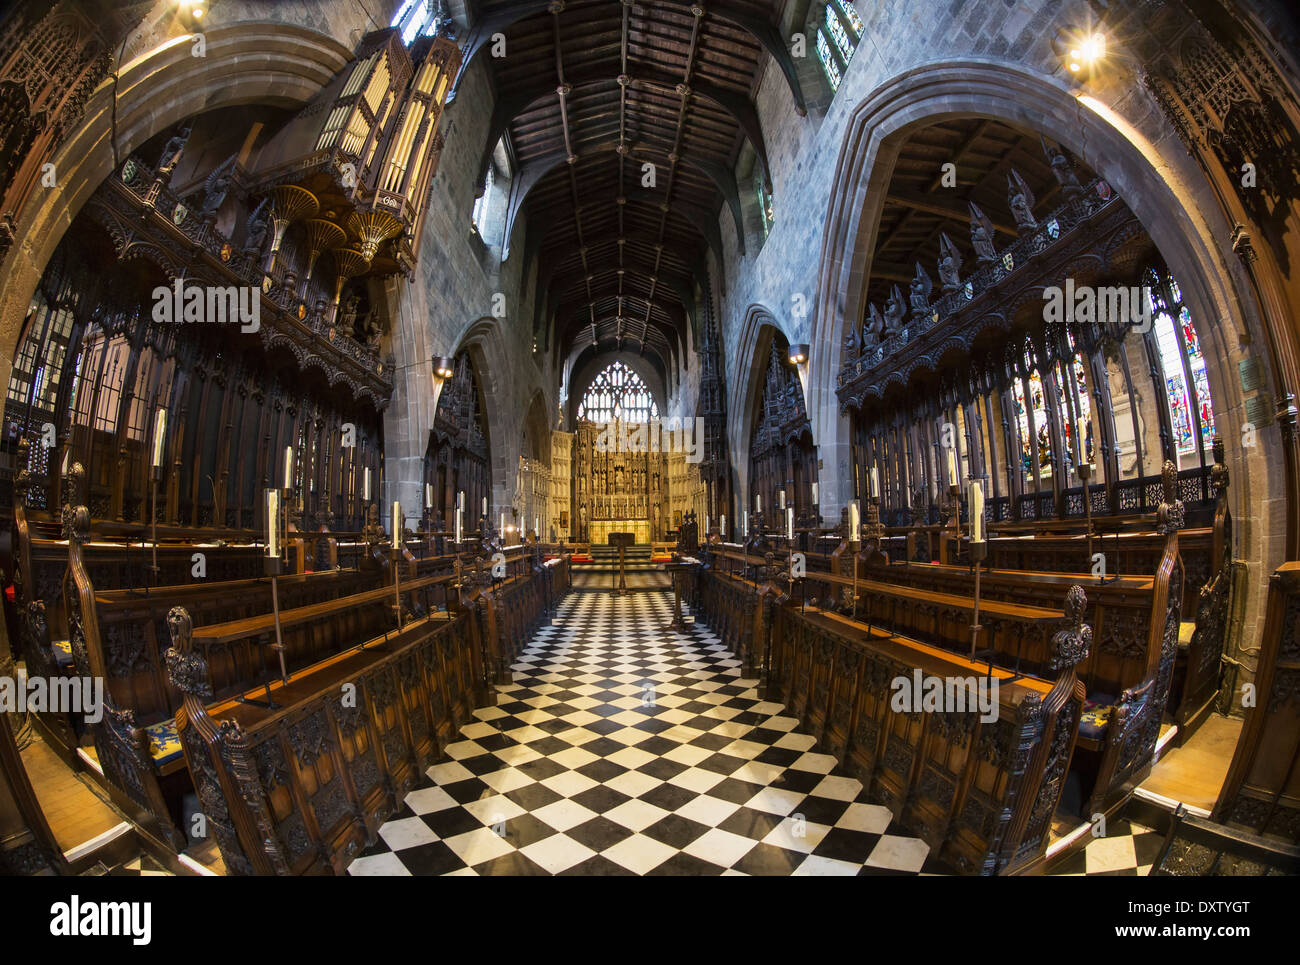 view of the interior of a church with a checkerboard floor through a stock photo royalty free. Black Bedroom Furniture Sets. Home Design Ideas